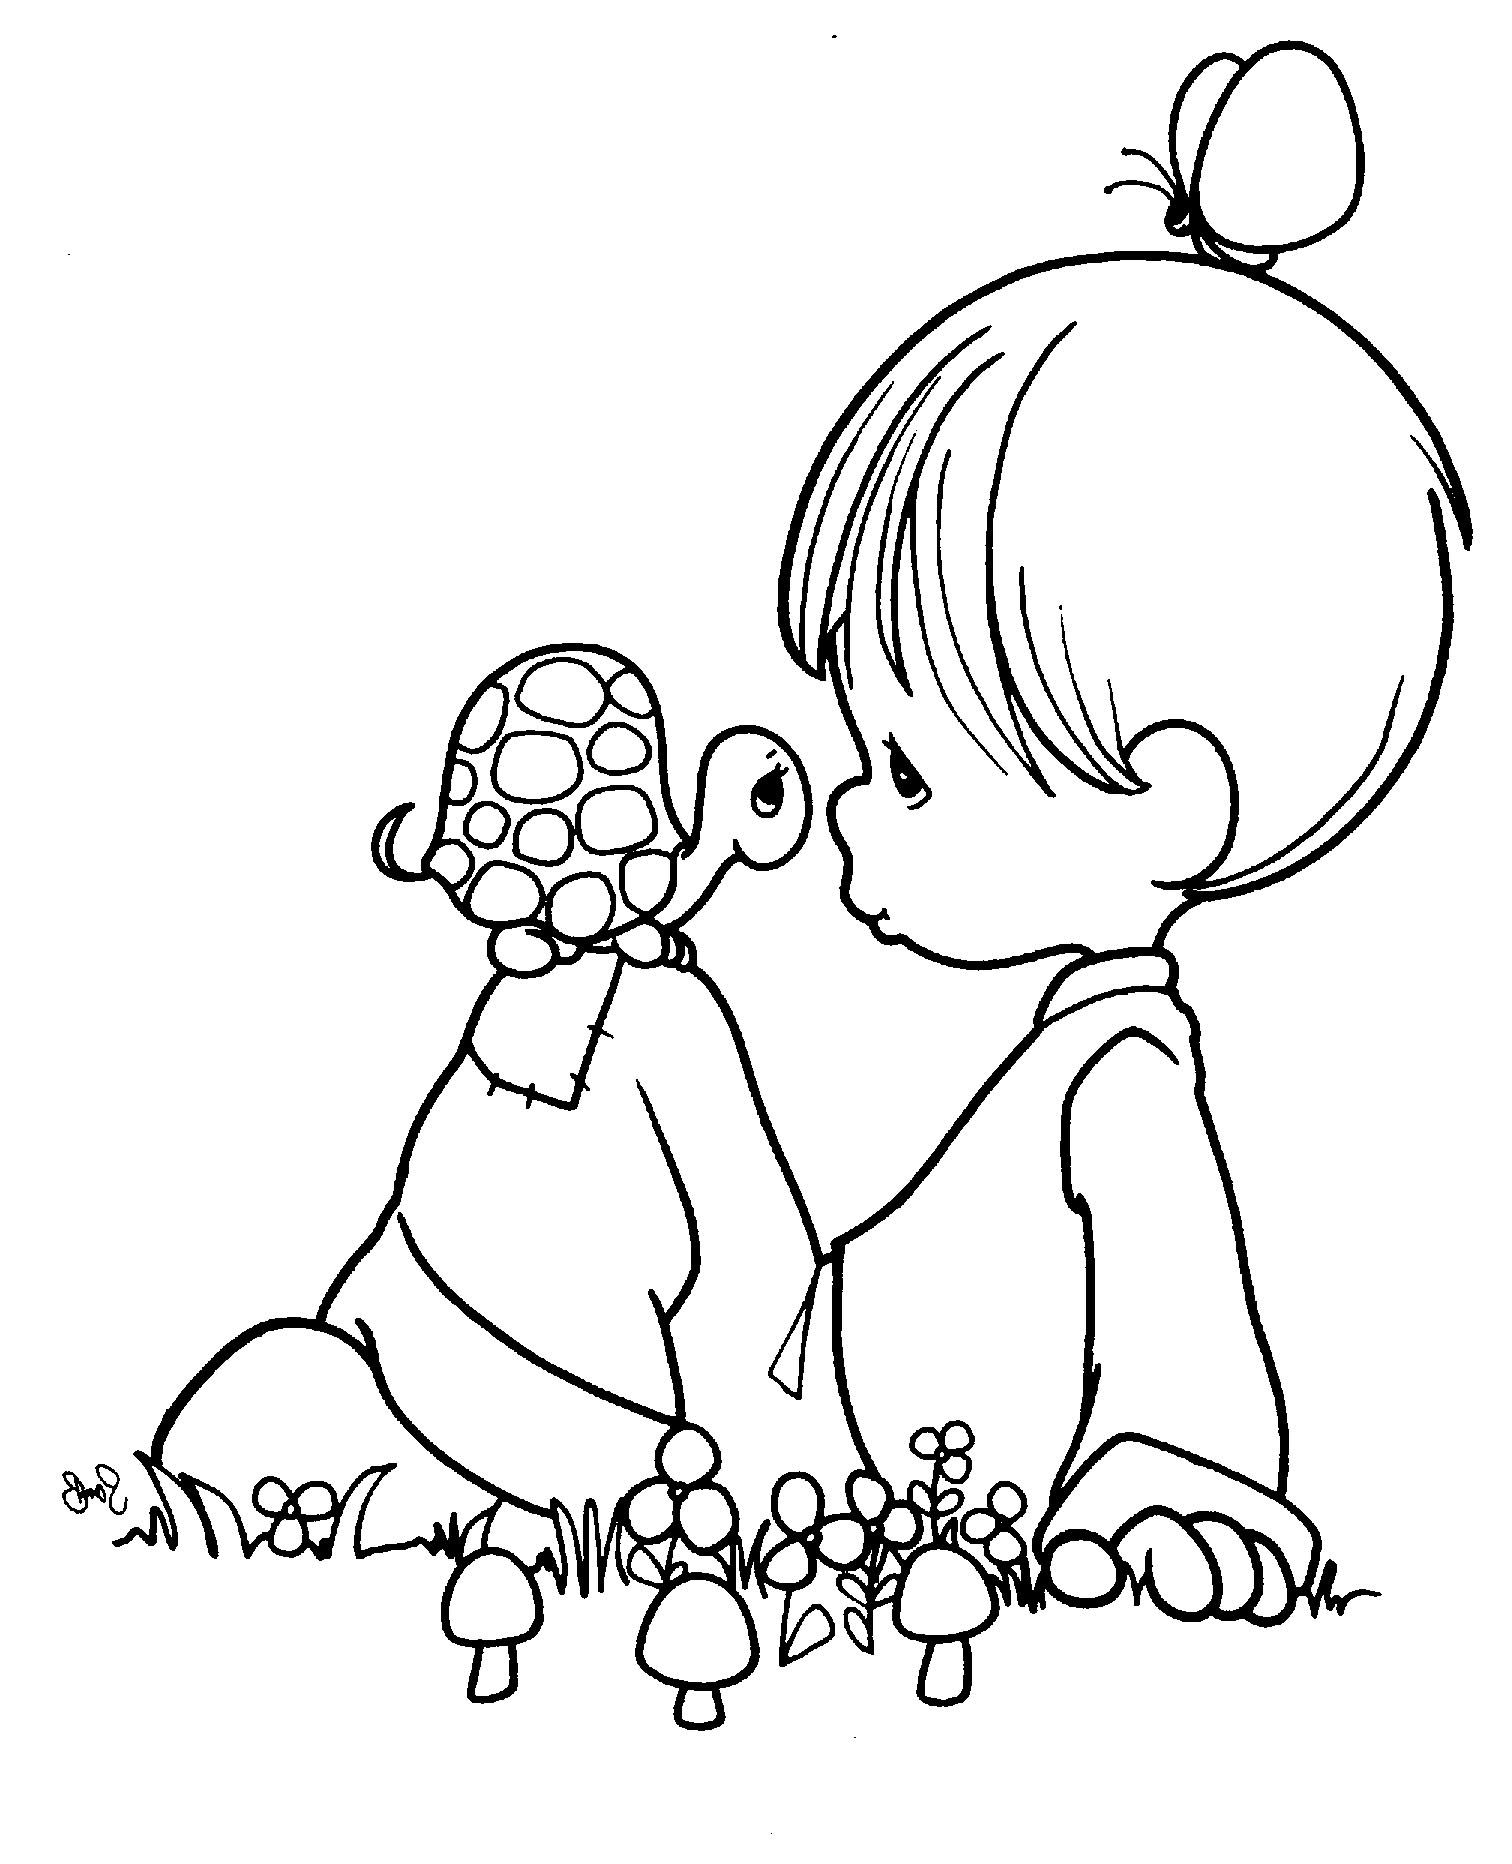 Precious Moments Baby Shower Coloring Pages Free Printout baby